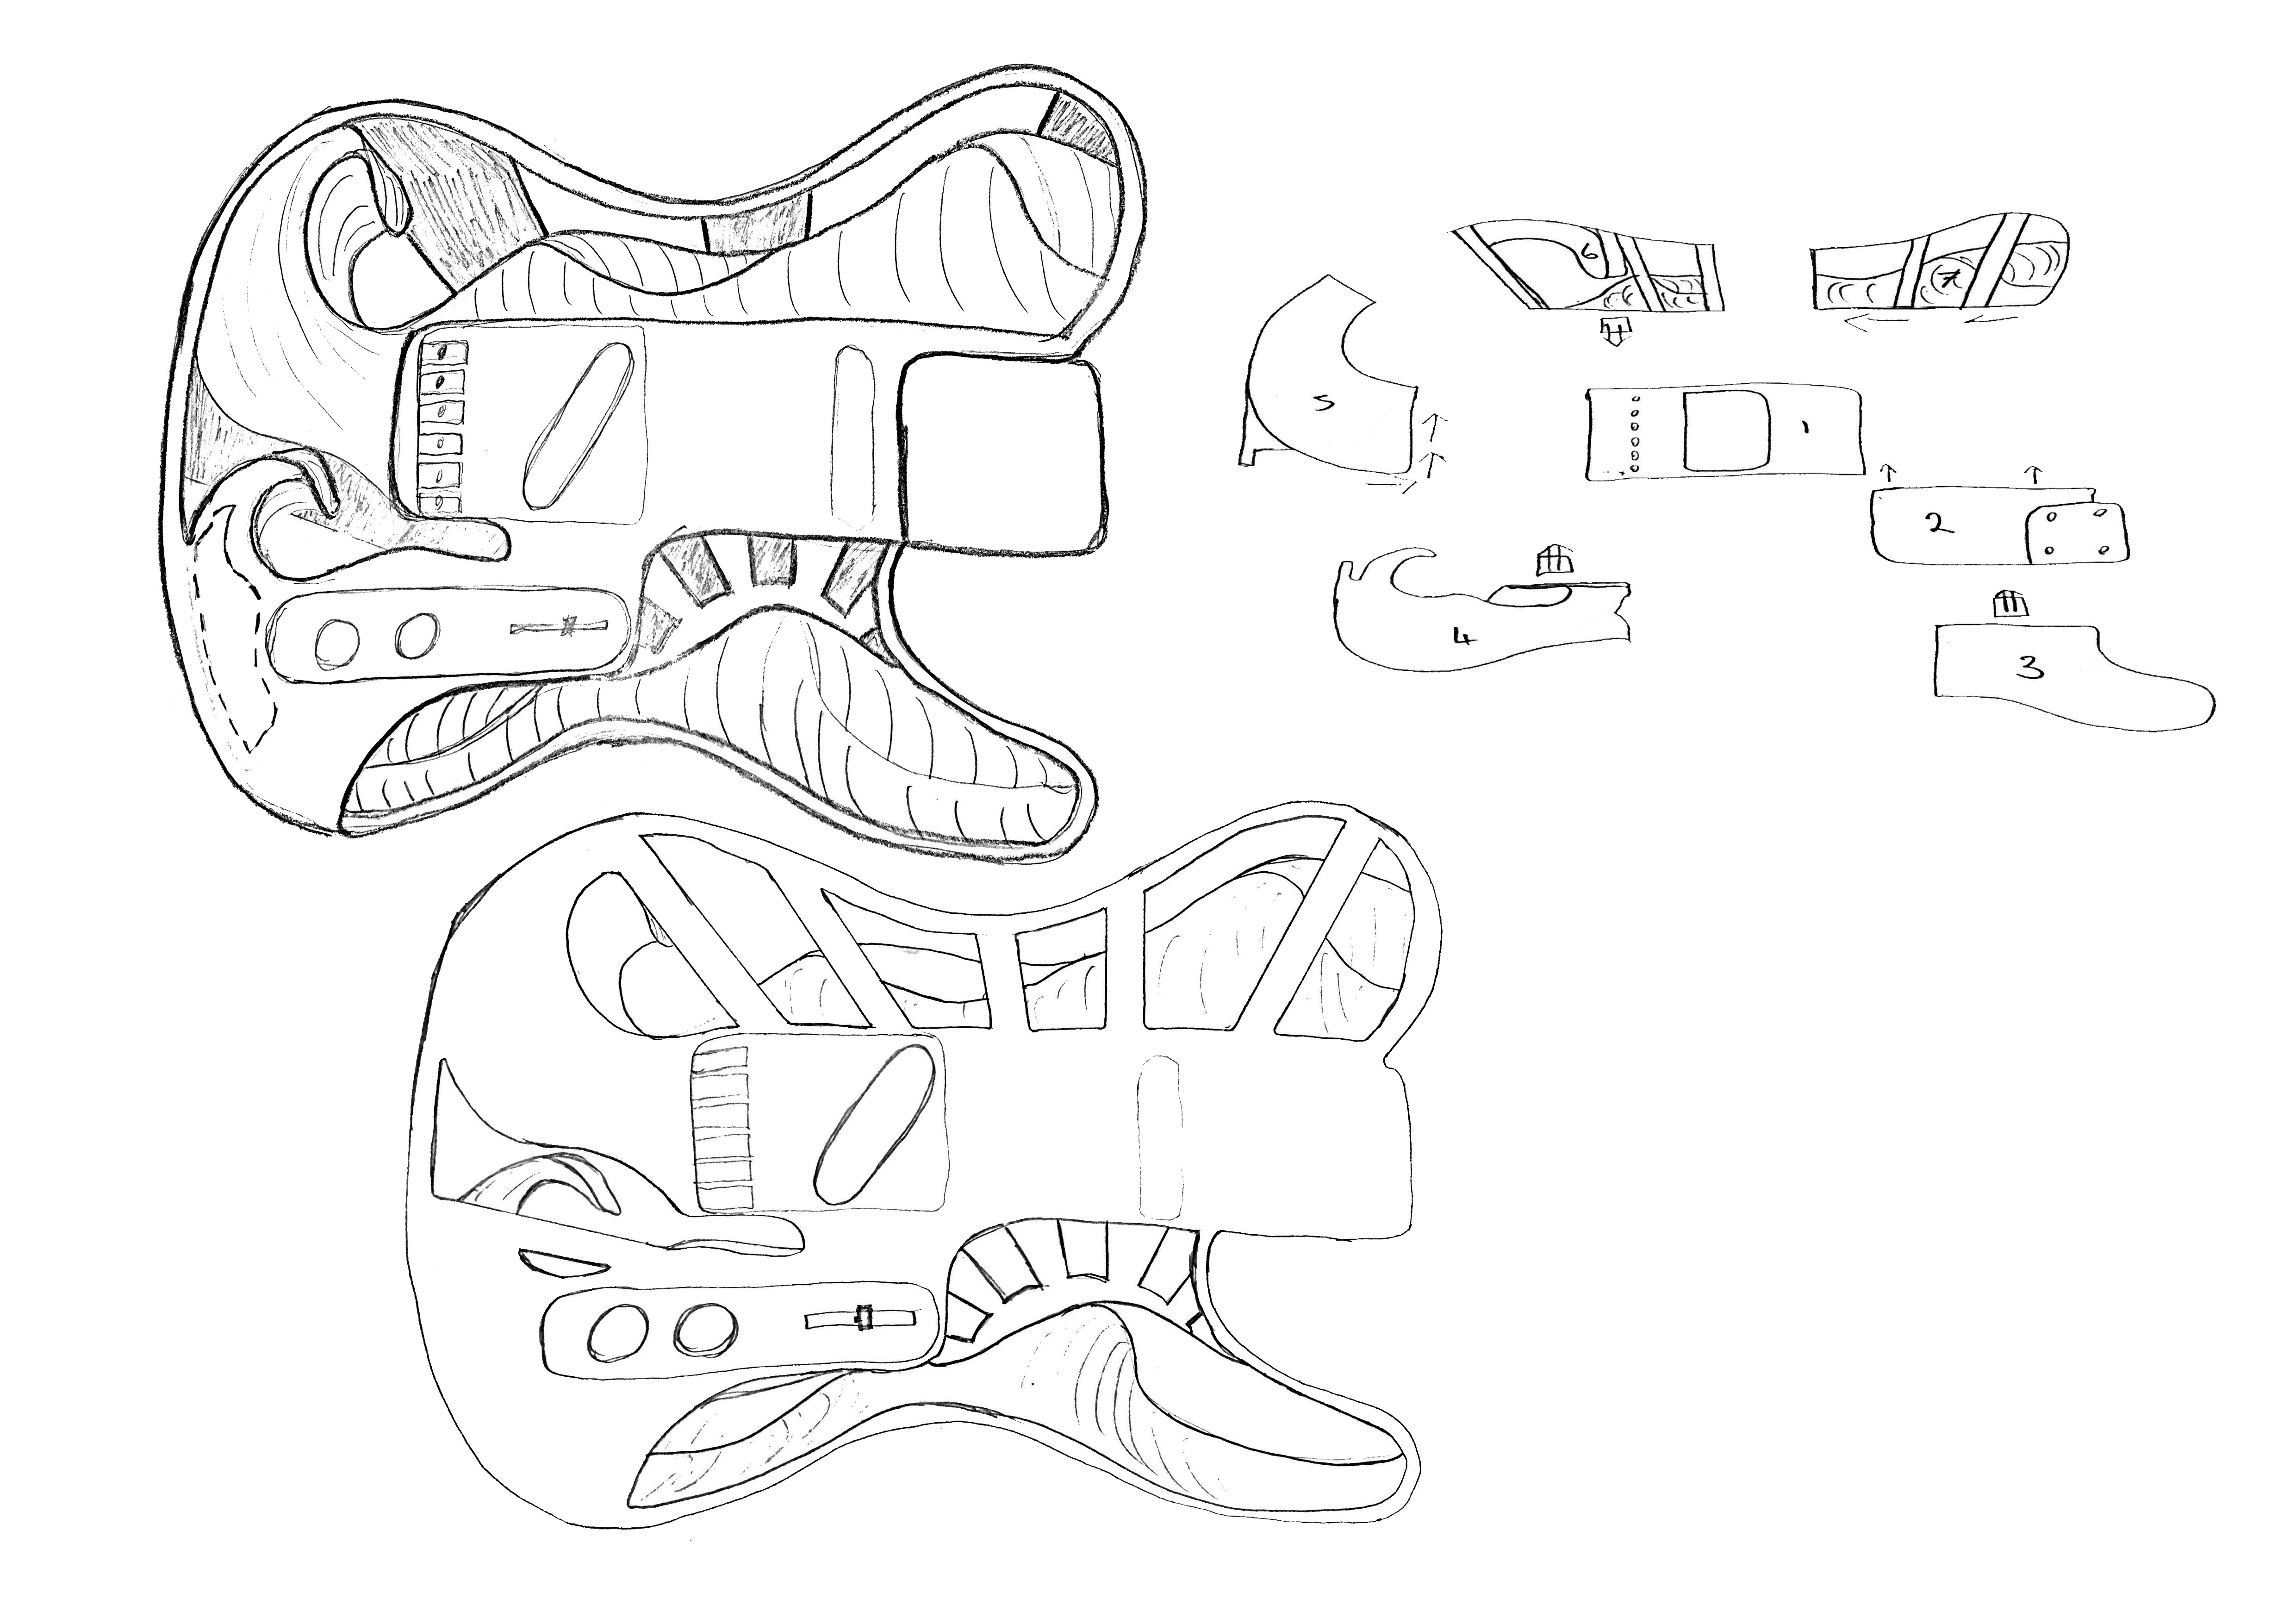 Some concept sketching.